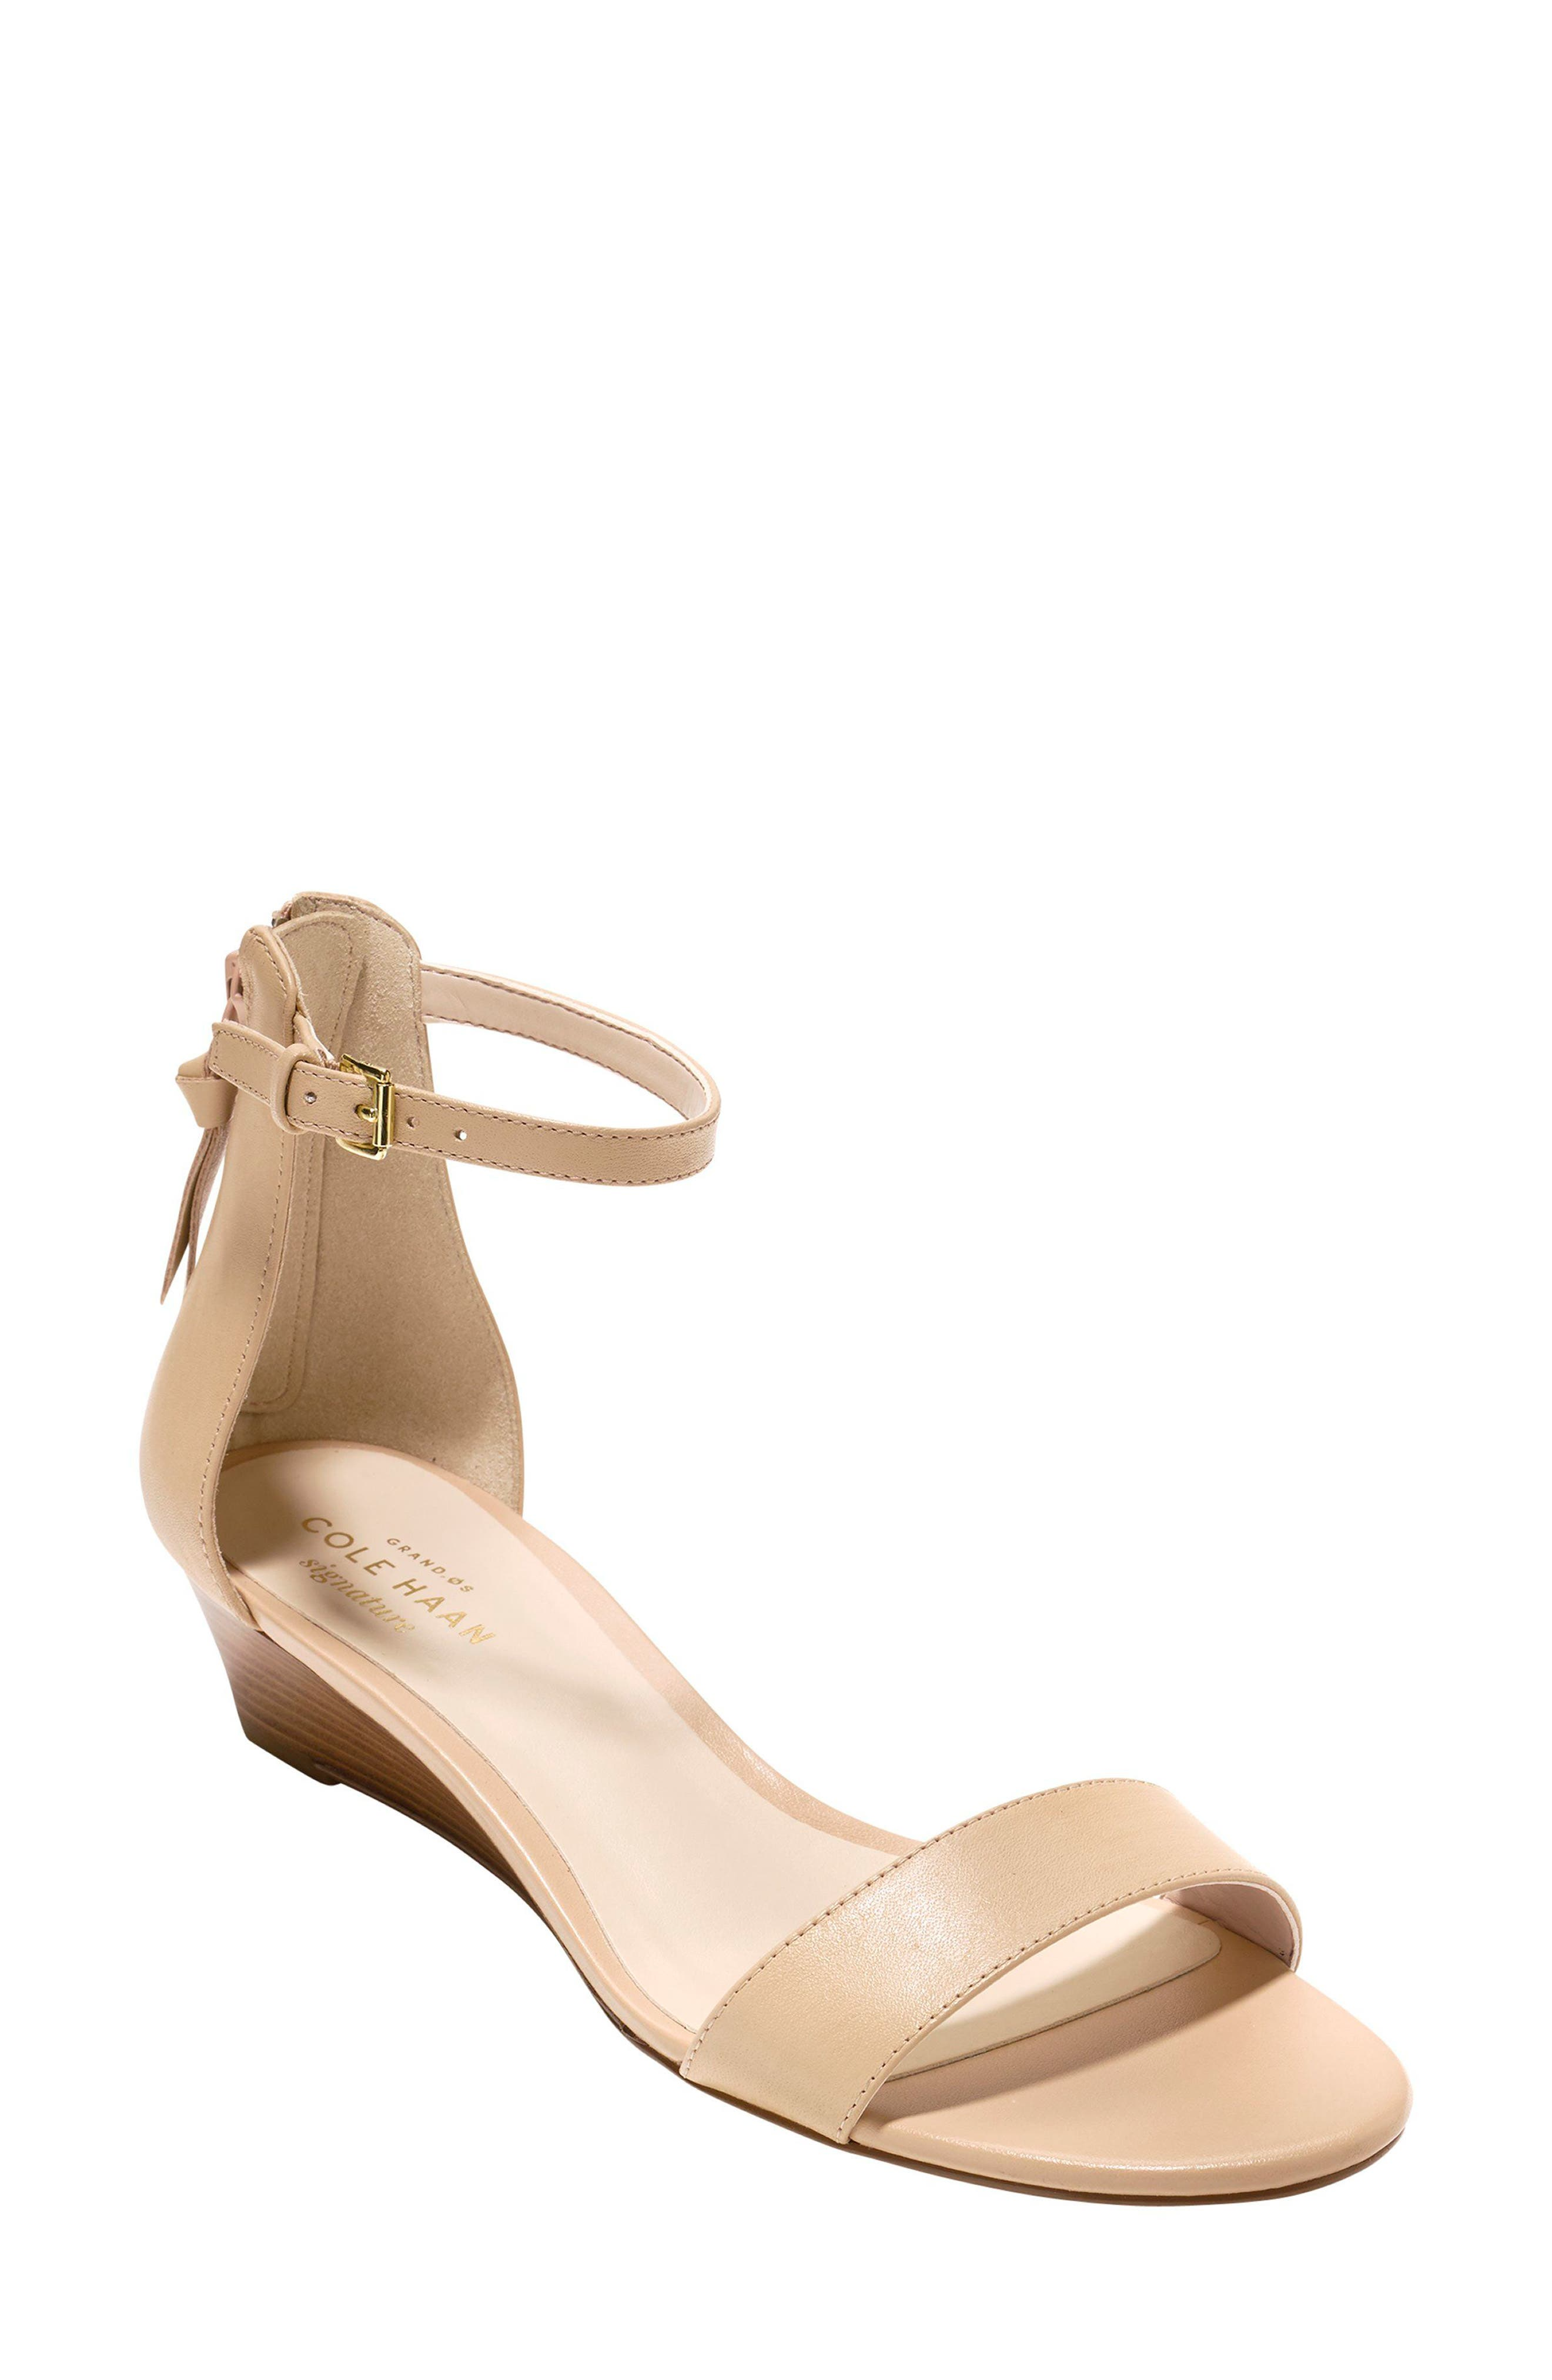 Adderly Sandal,                         Main,                         color, NUDE LEATHER